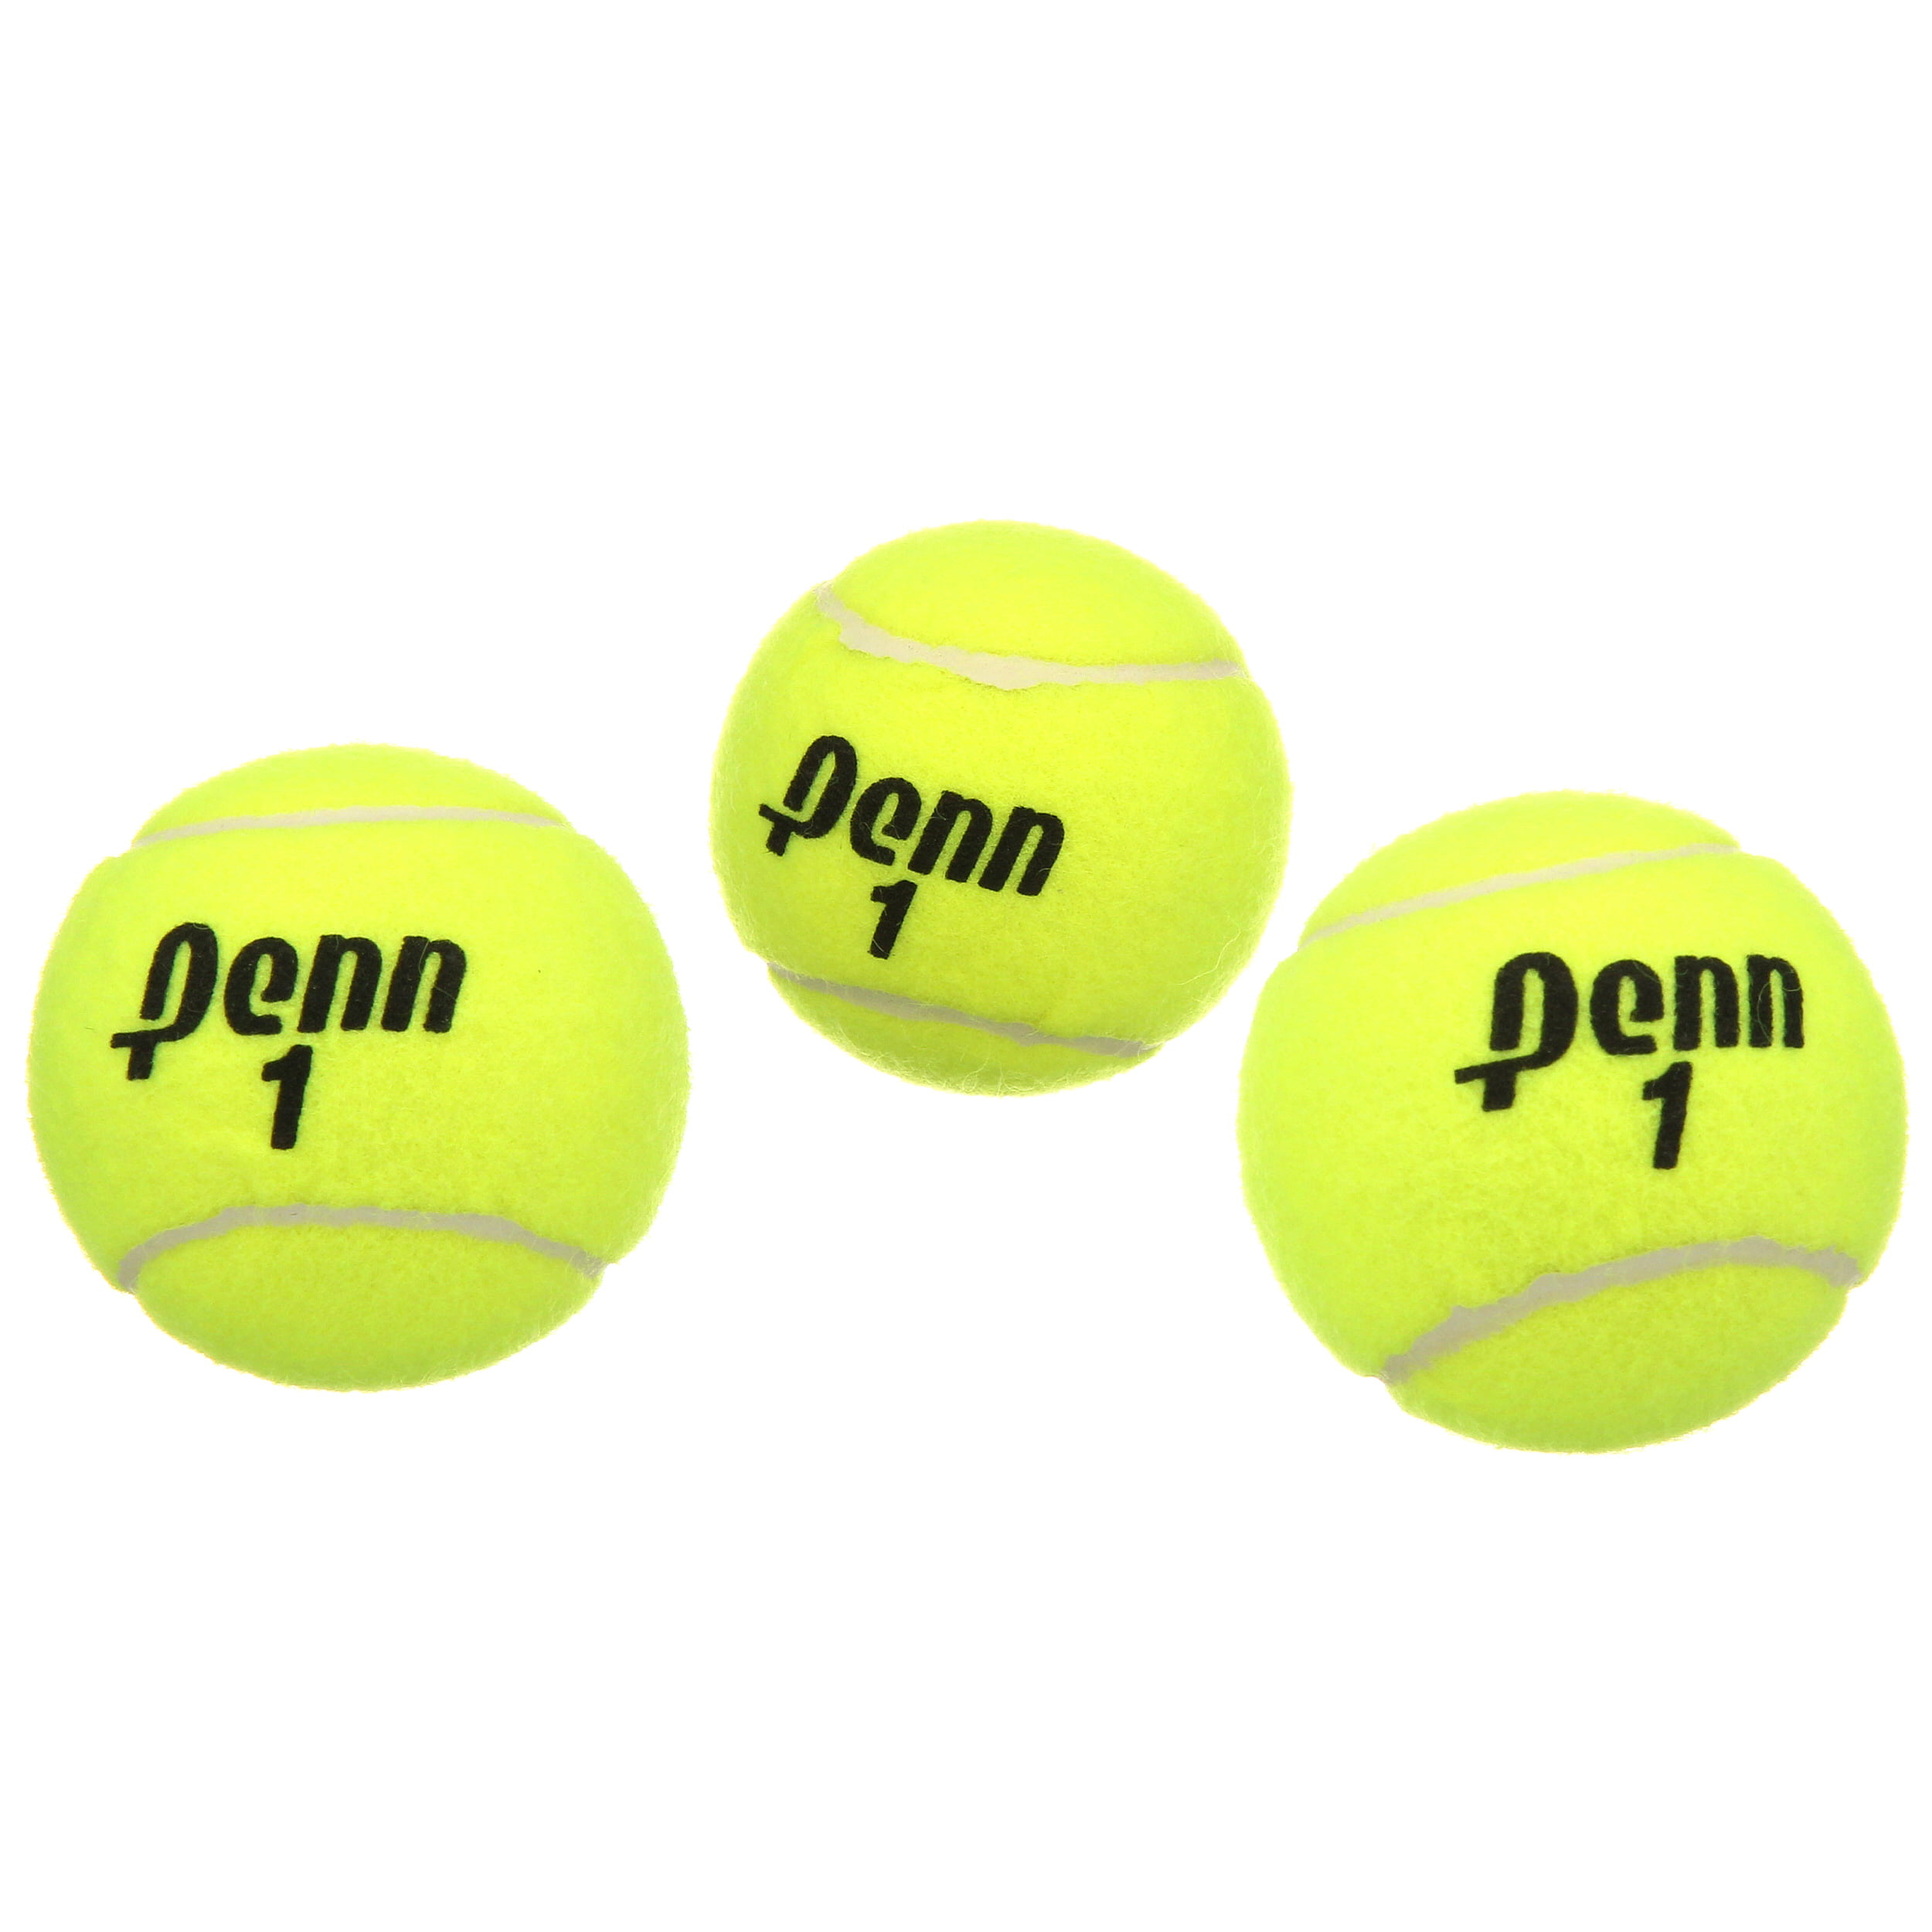 Official 72 Balls 24 Cans Tennis Balls Penn Championship Extra Duty Large Case